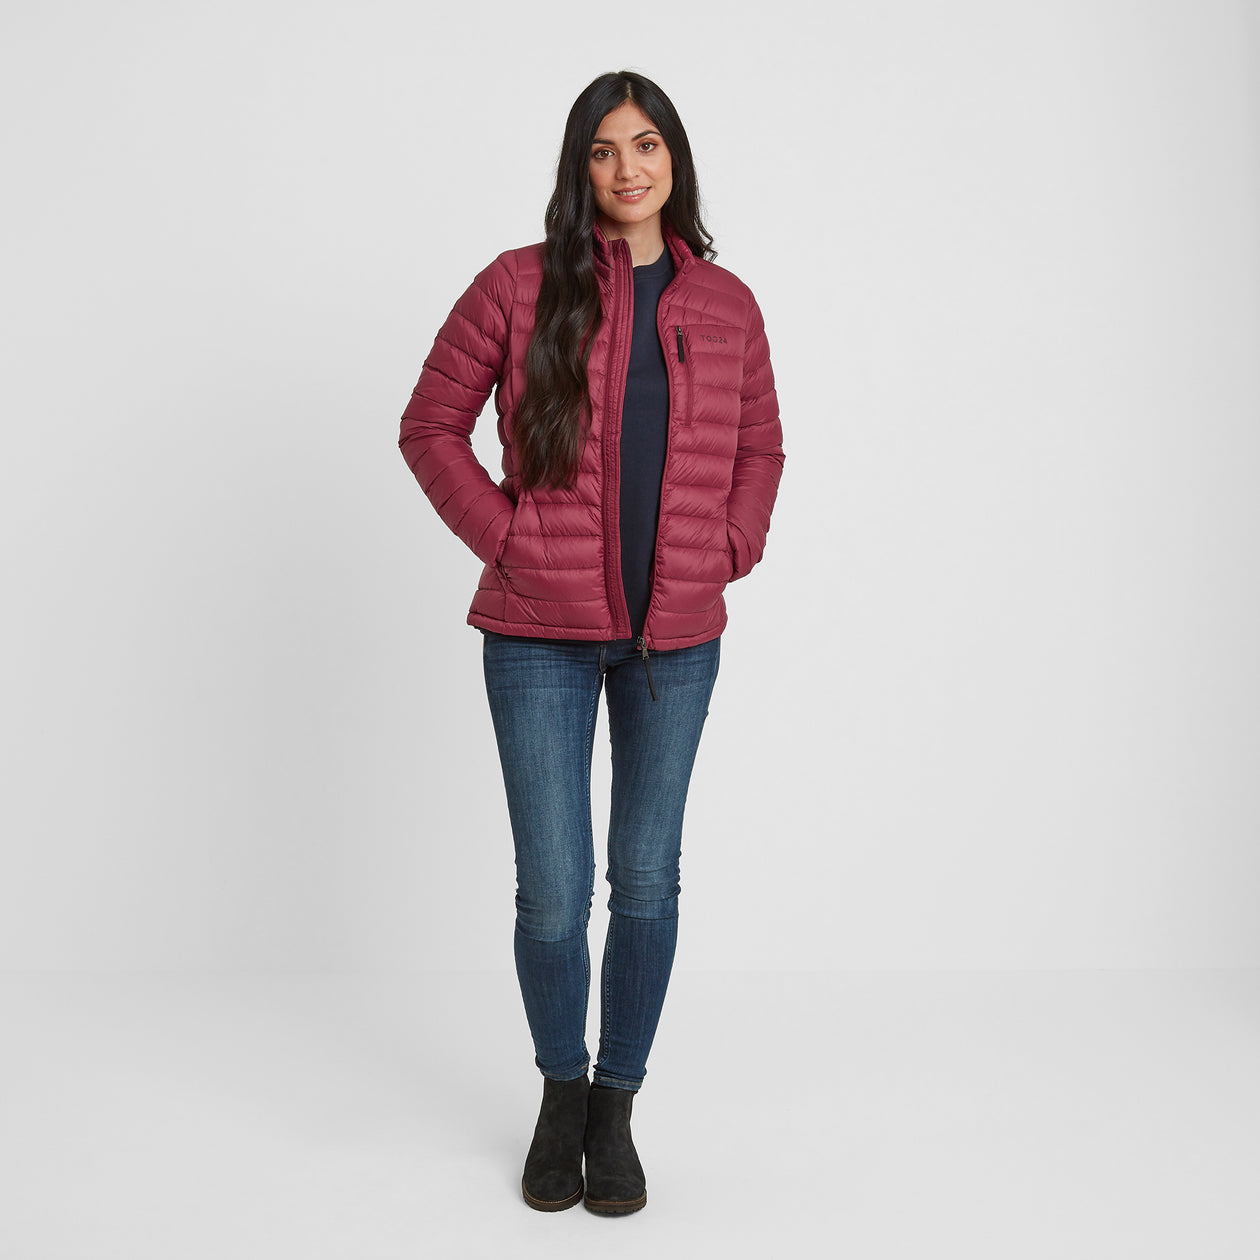 Drax Womens Funnel Down Jacket - Raspberry image 4